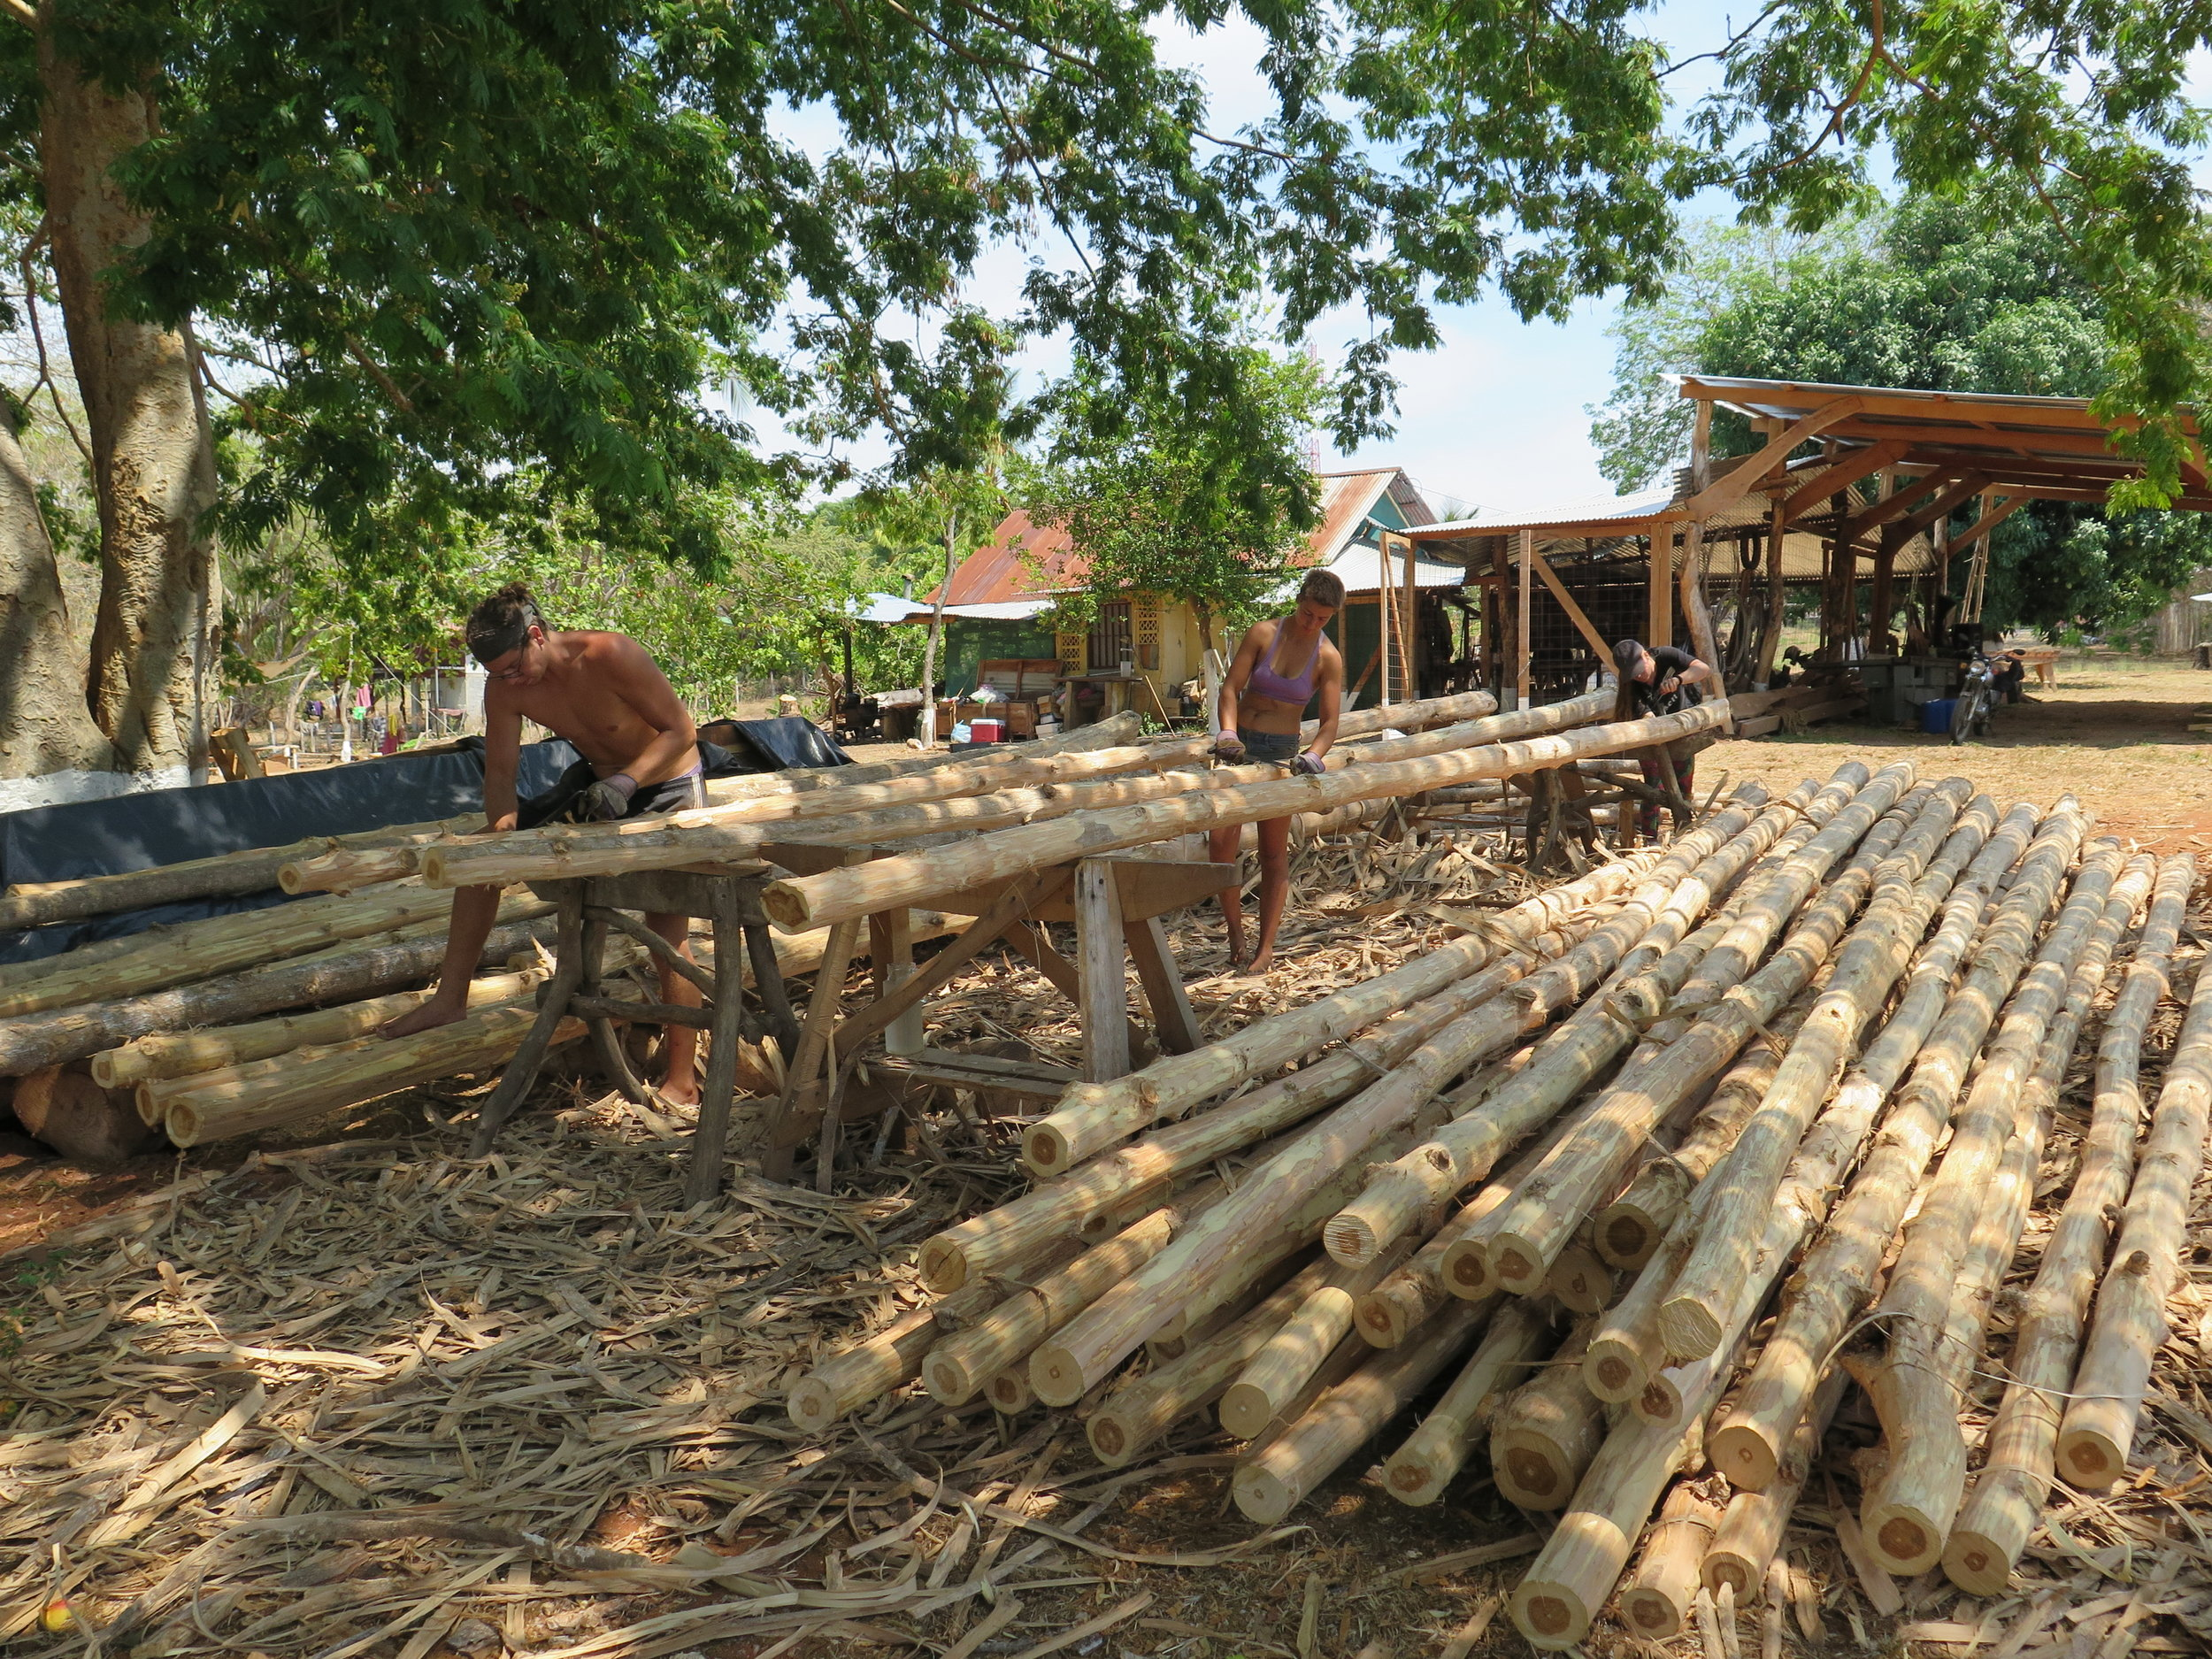 Sailors of TIMBERCOAST's cargo schooner AVONTUUR, Marv + Lilly peel the bark off of plantation teak trees, which will be used to construct the shipbuillding hangar.